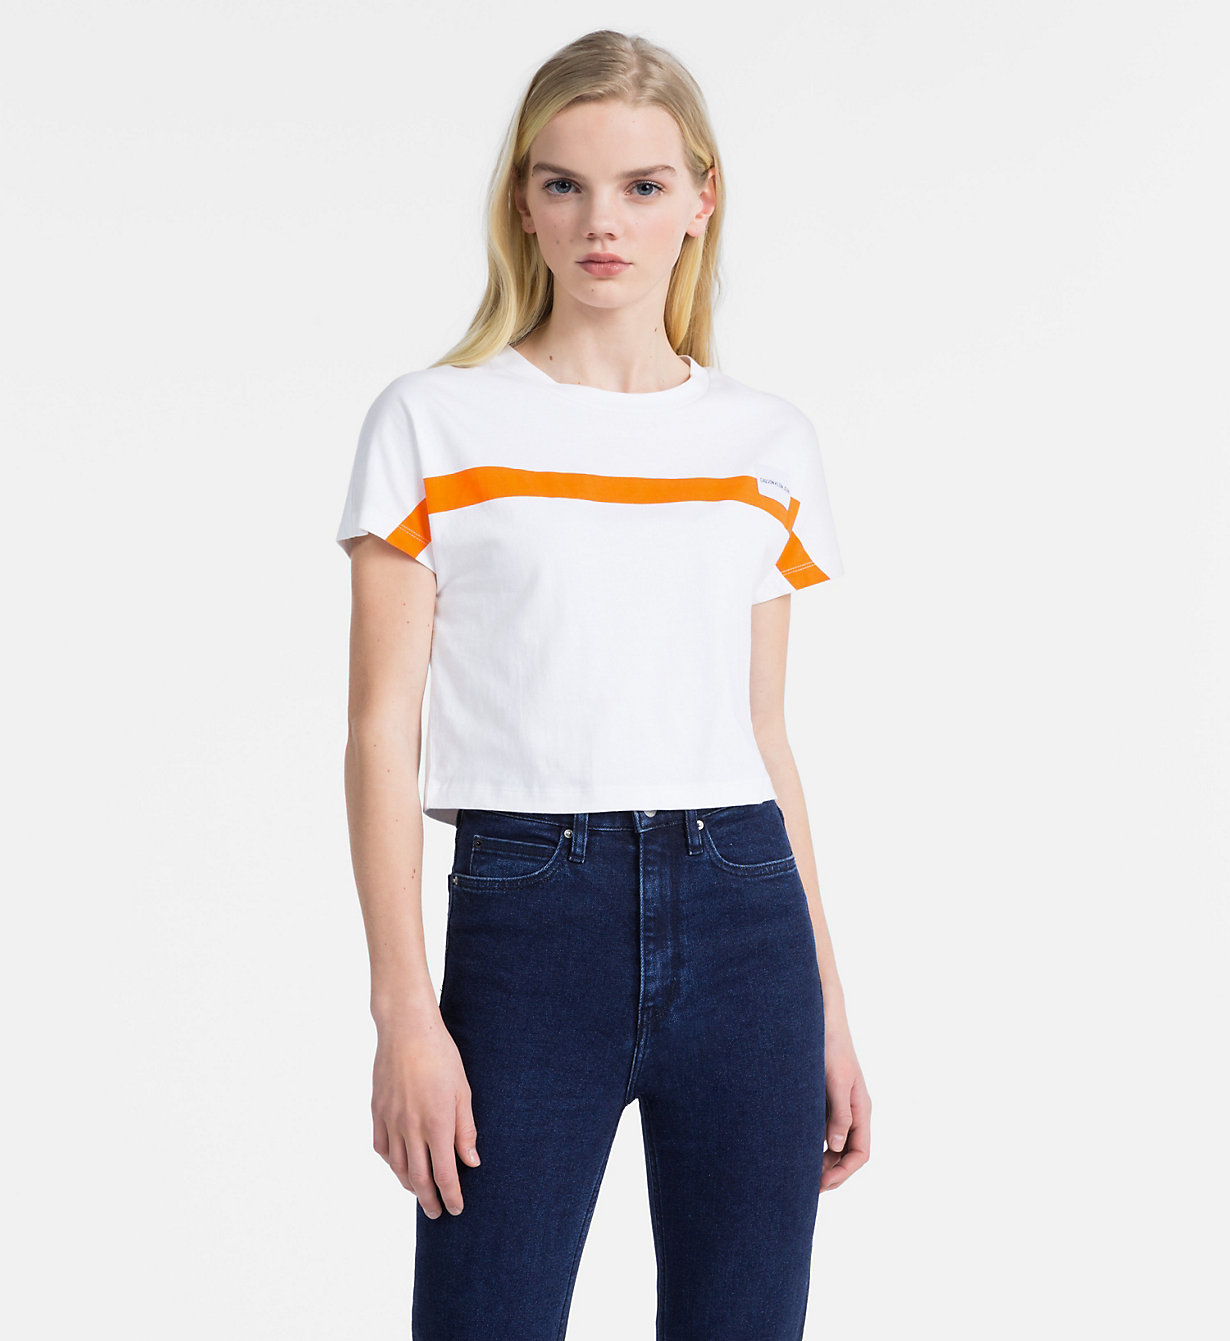 Slim Cropped Cap Sleeve T Shirt by Calvin Klein Jeans